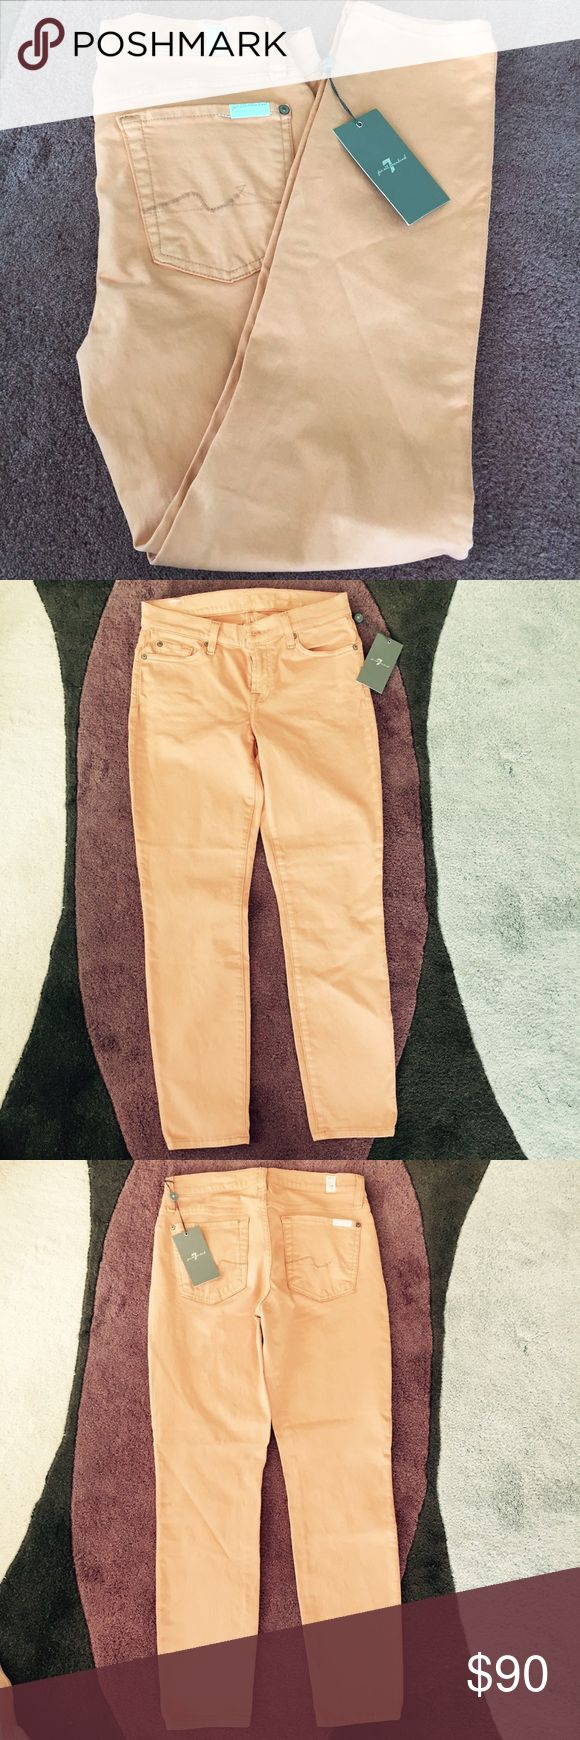 🆕 7 For All Mankind Peach Jeans Pants 🆕 7 For All Mankind Peach Jeans Pants. NWT. Color most resemble the cover picture. In between skinny and straight pants. 7 For All Mankind Pants Straight Leg